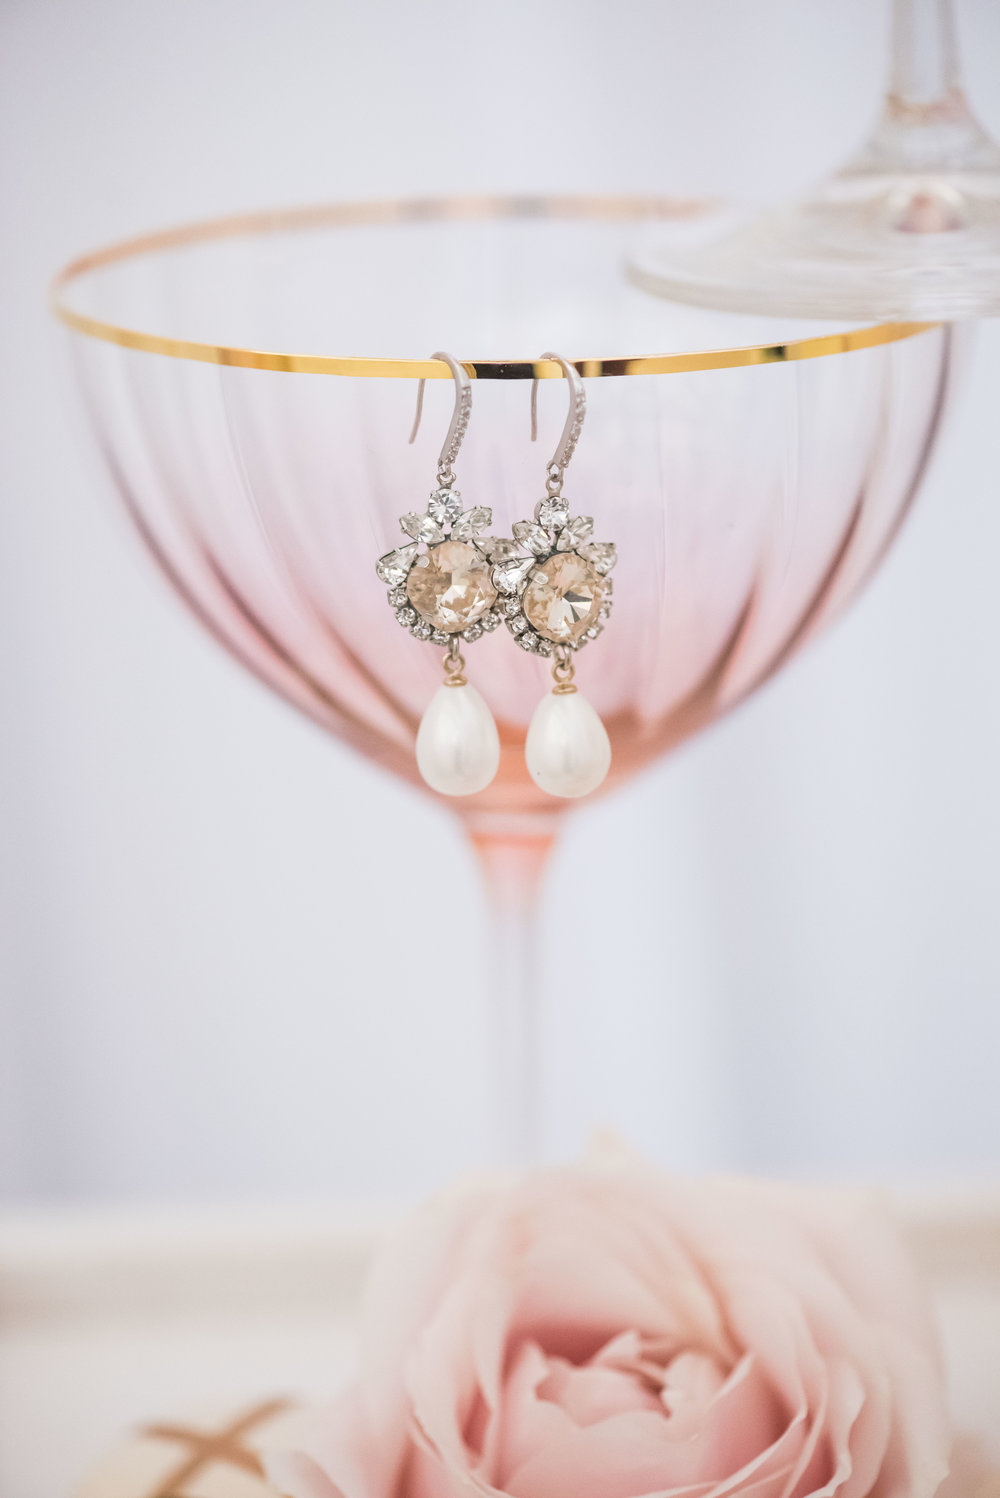 Vancouver Wedding Jewelry, Elsa Corsi